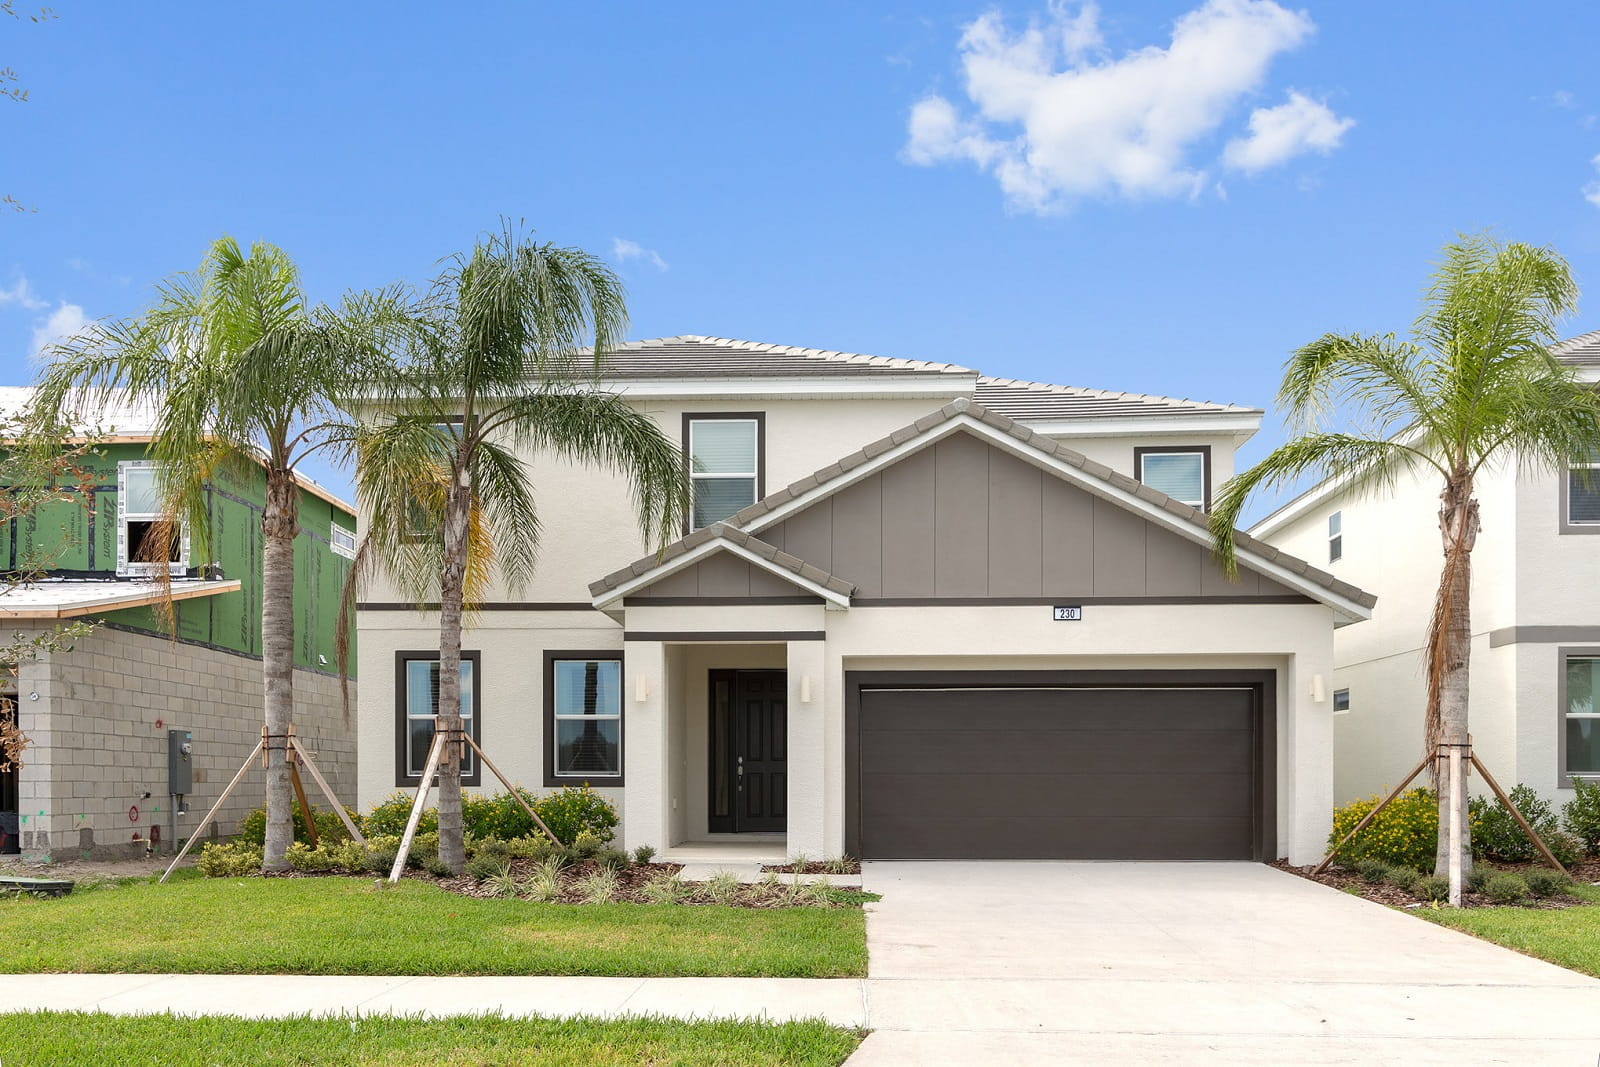 Real Estate Photography in Kissimmee - FL - USA - Front View